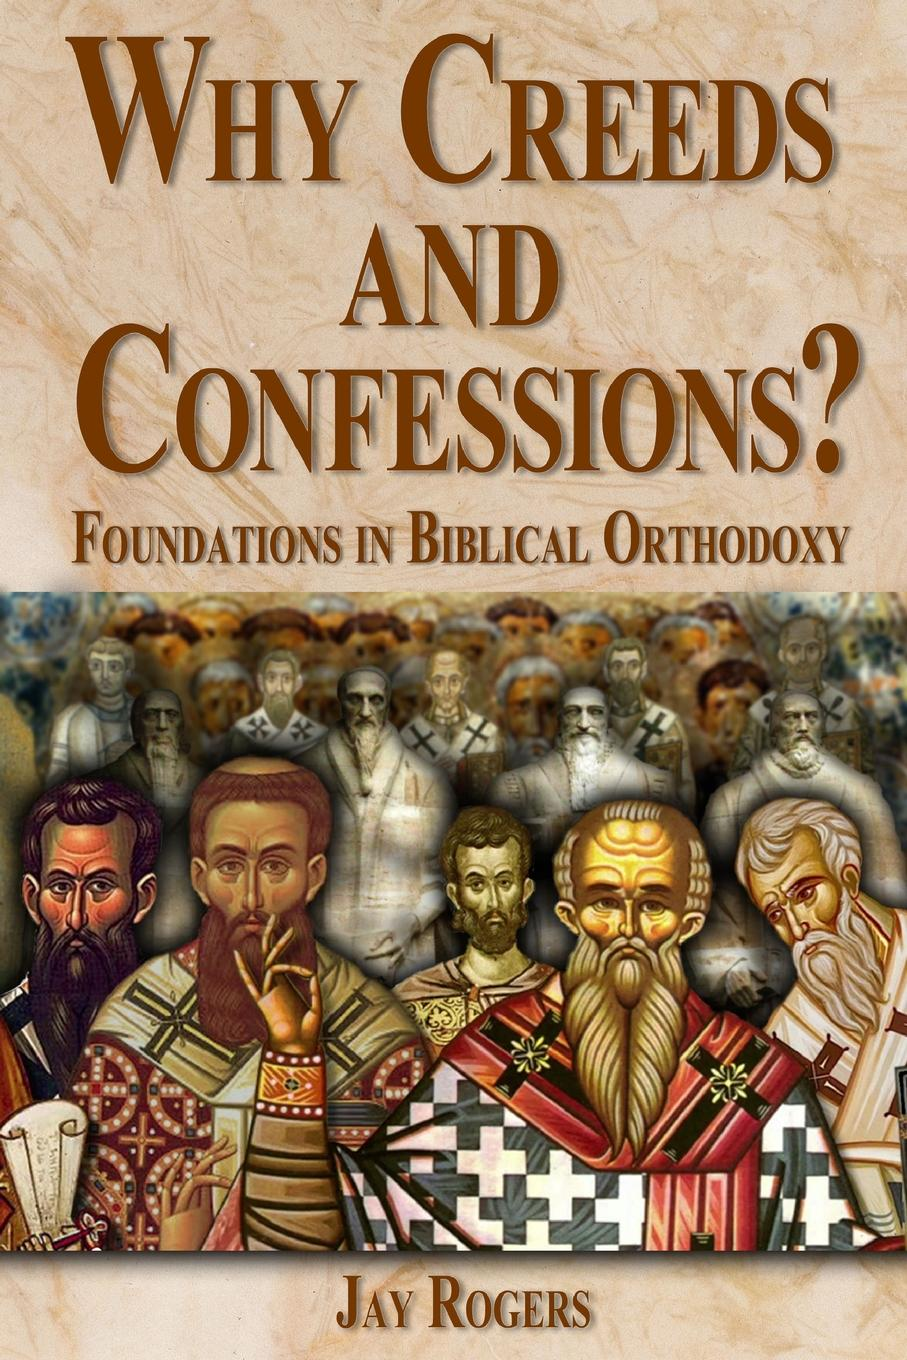 Jay Rogers Why Creeds and Confessions. a multitude of sins